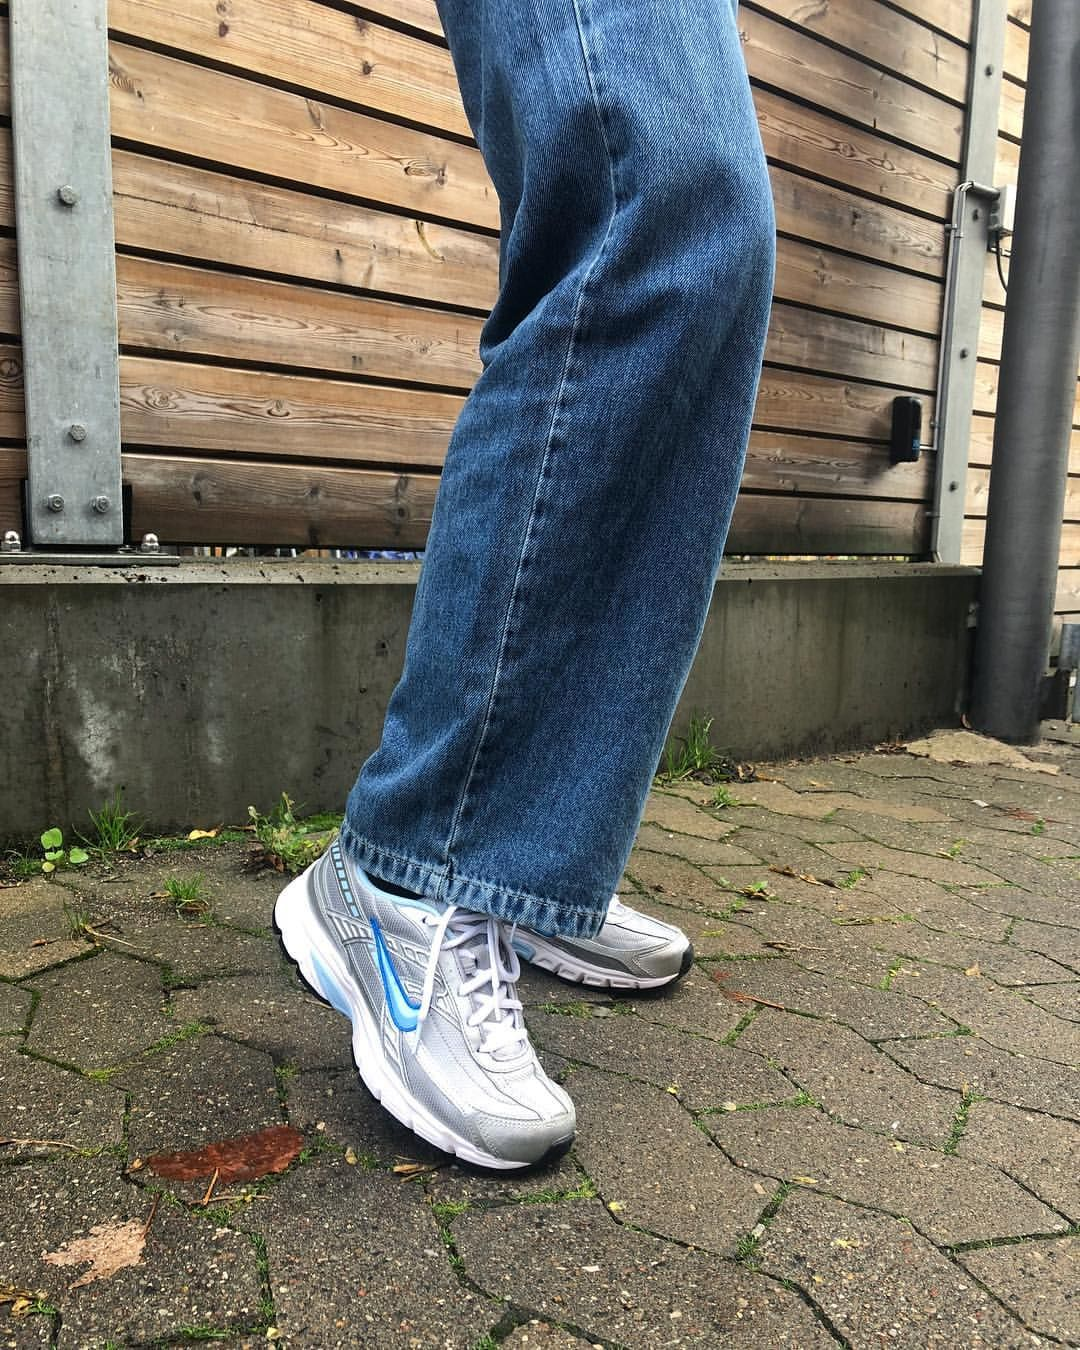 nike initiator argent blue | Types of